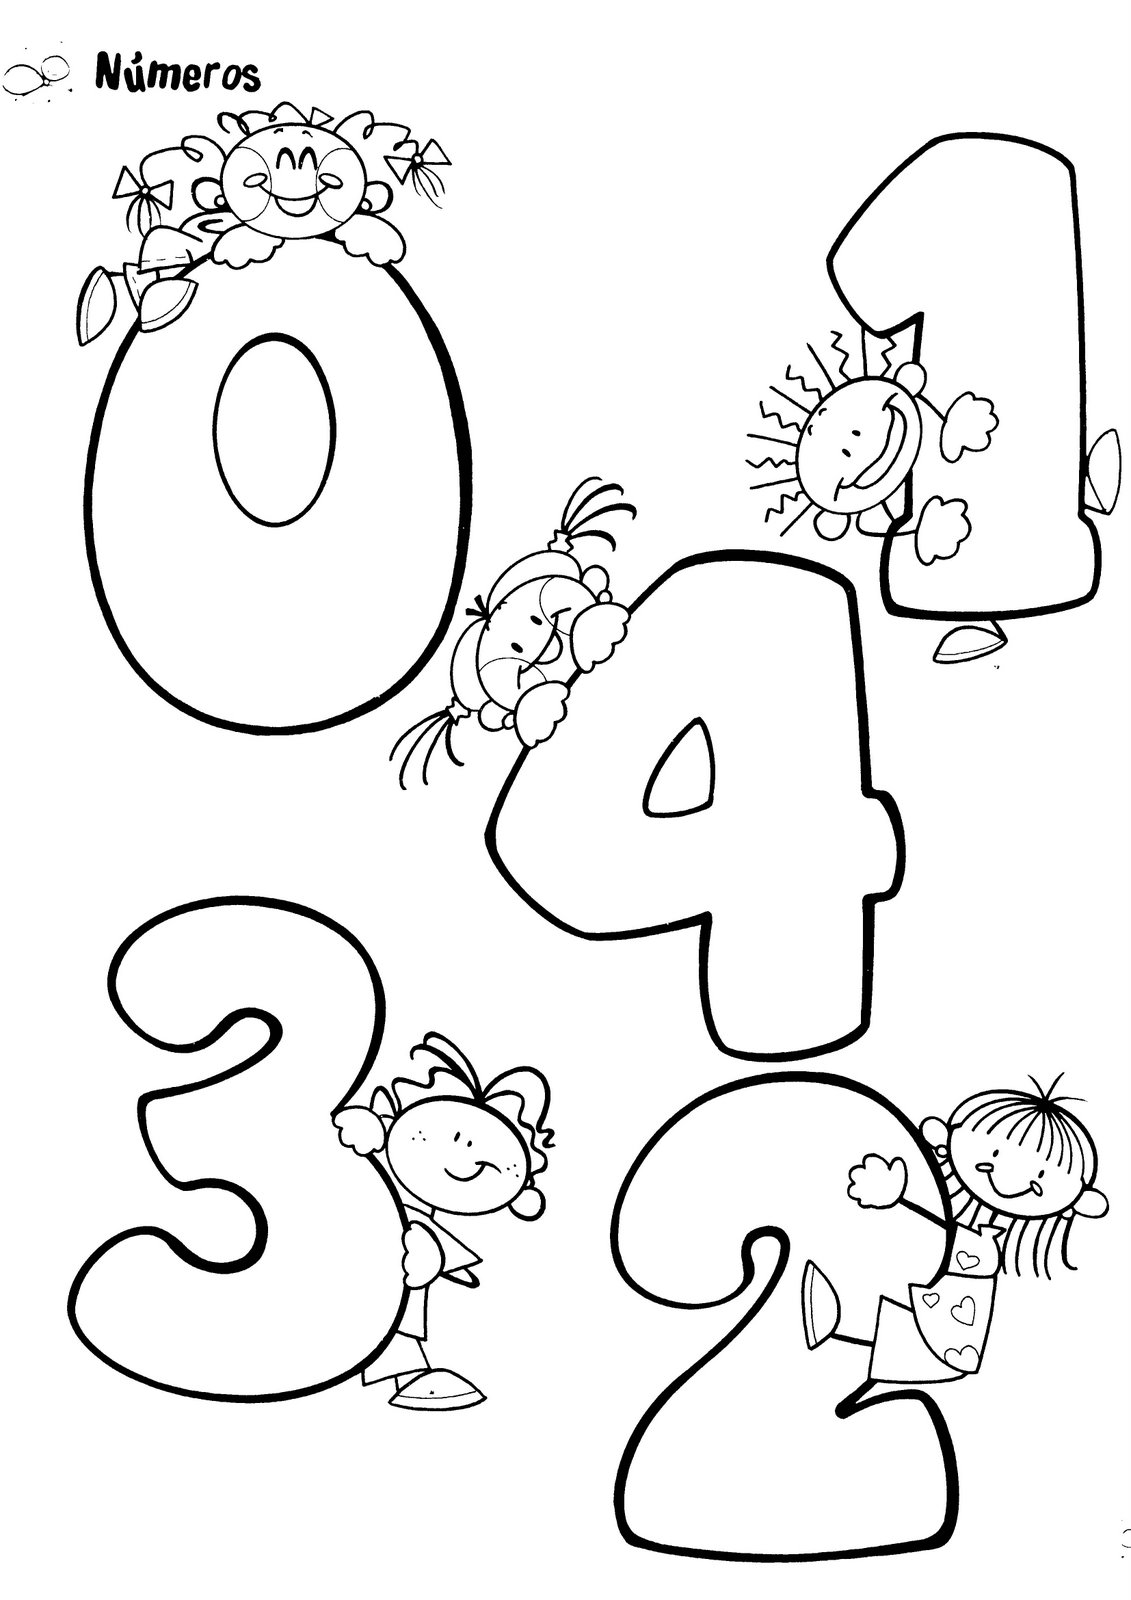 portadas de infornes Colouring Pages